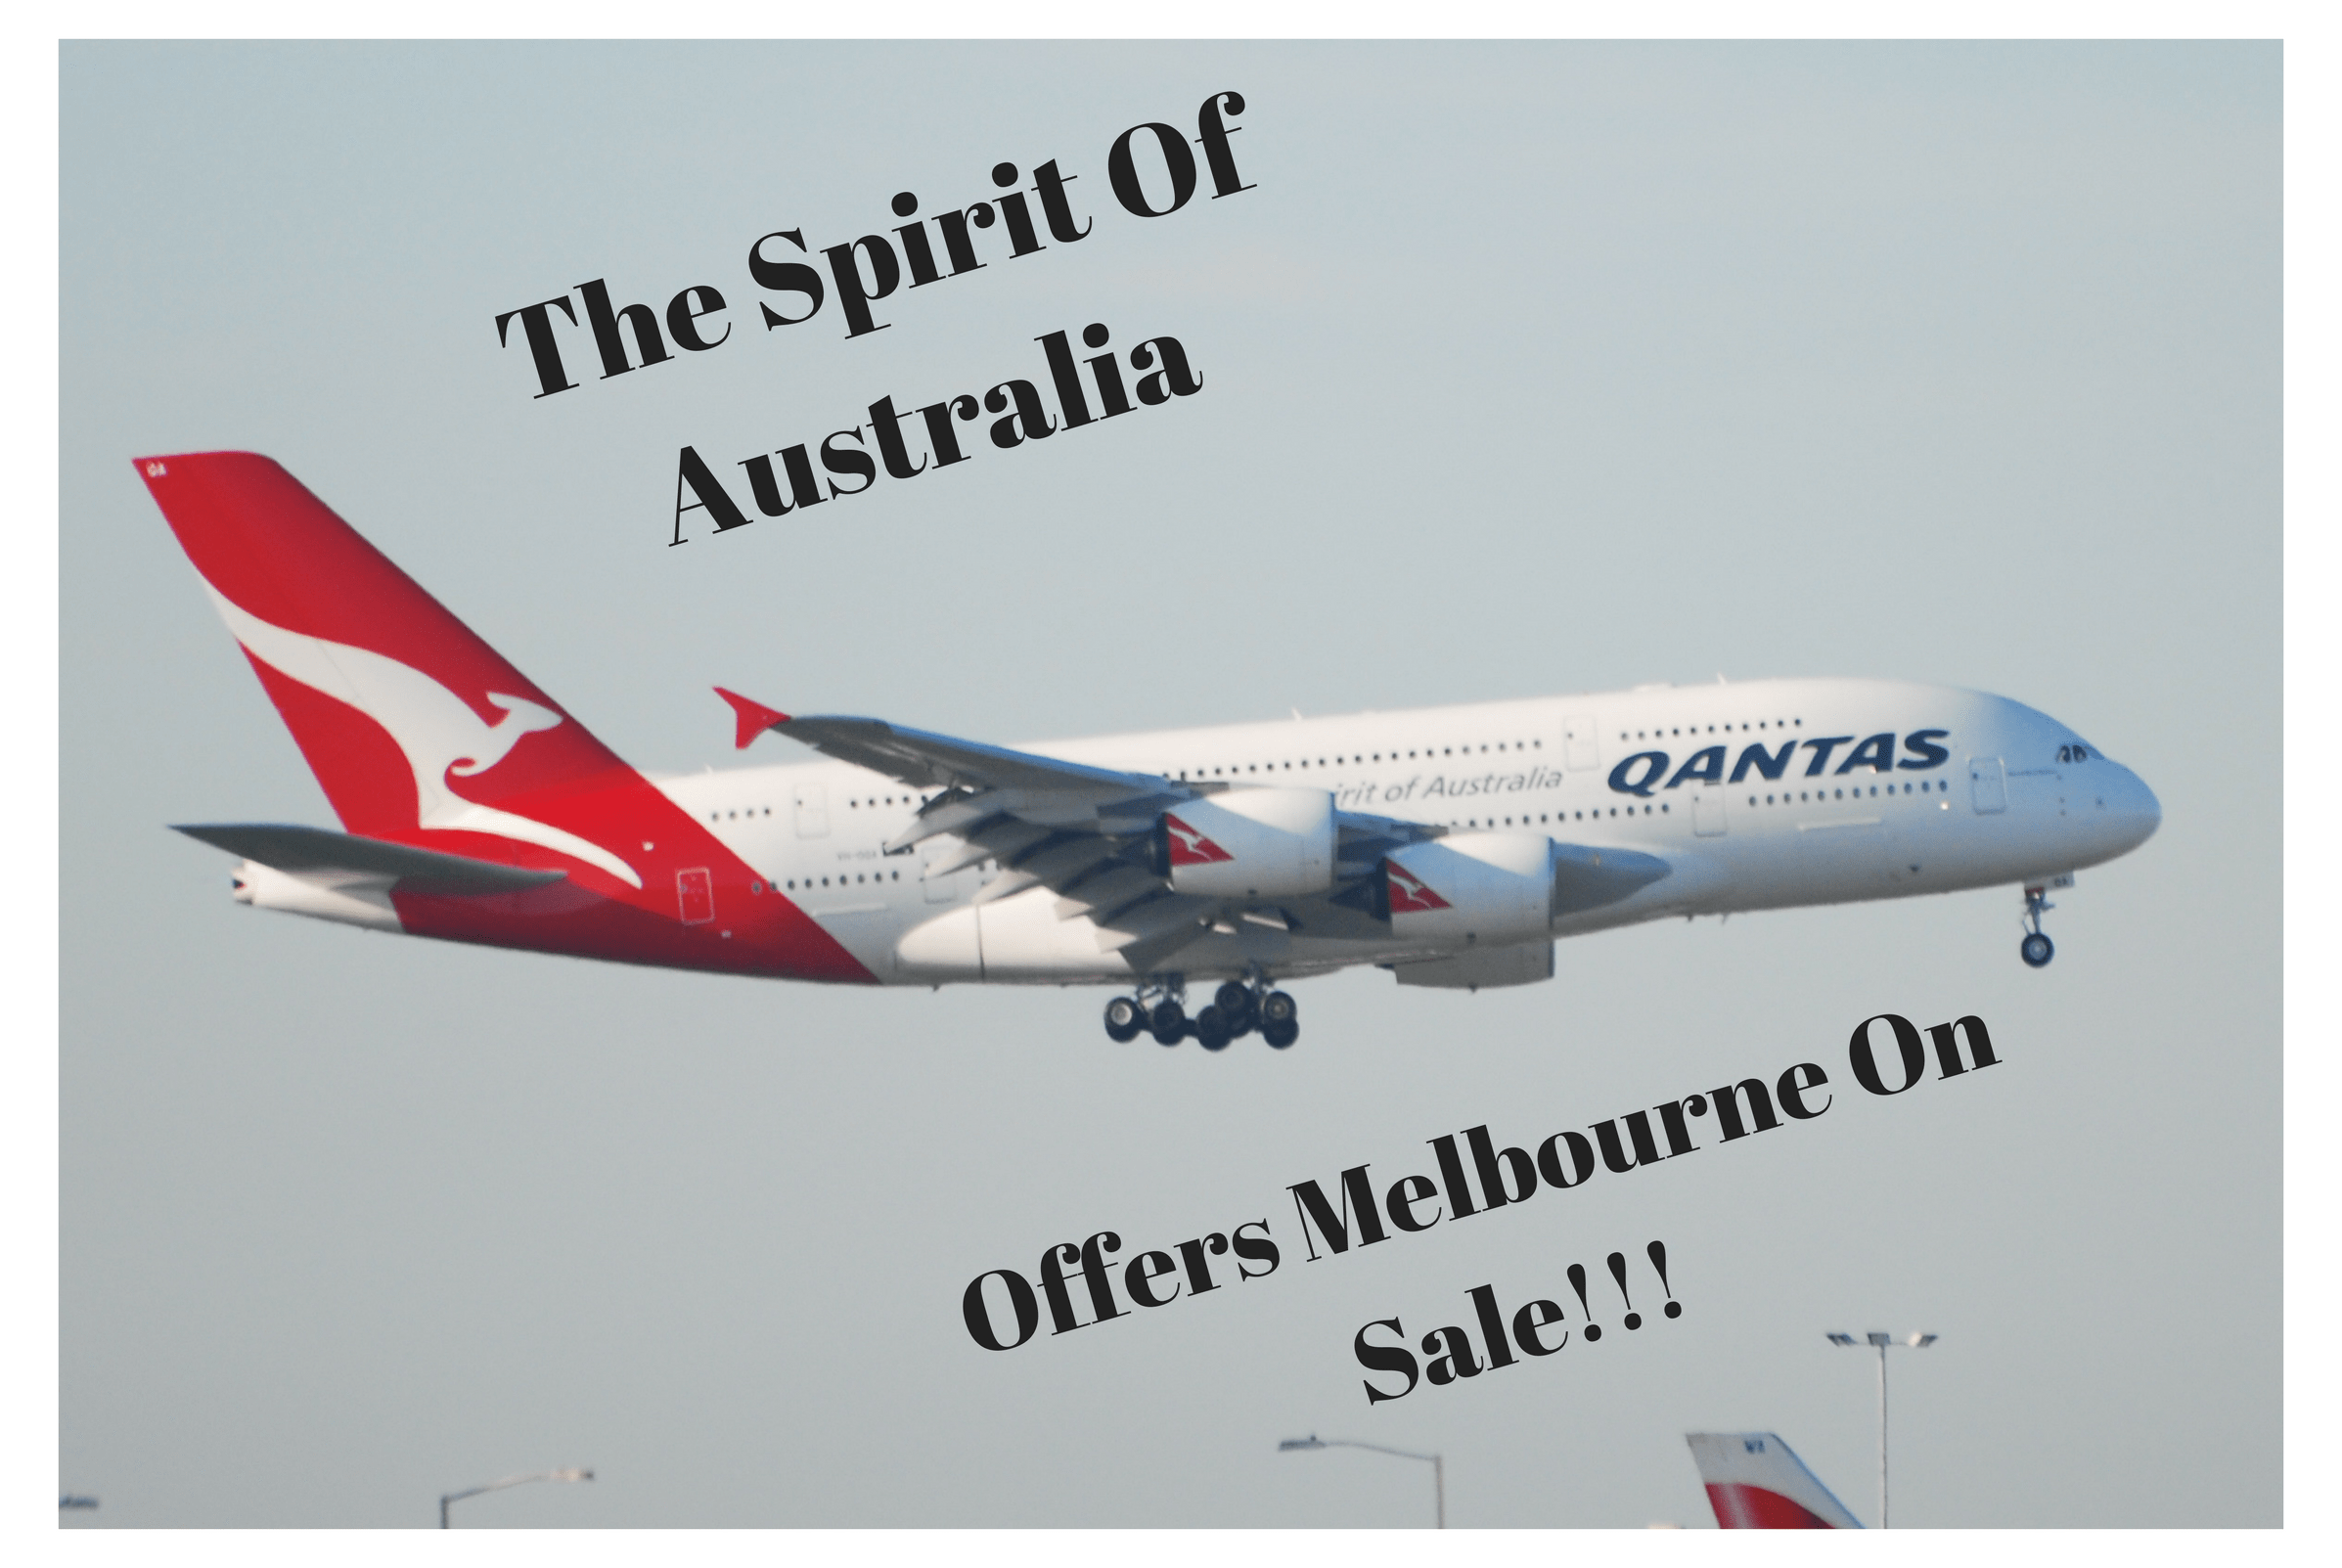 investment report on qantas airlines Qantas airlines business report established in 1920, qantas is the world's 11th largest airline and the 2nd oldest it was founded in the queensland outback as the queensland and northern territory aerial service (qantas) limited, by pioneer aviators hudson fysh, paul mcginness and fergus mcmaster.